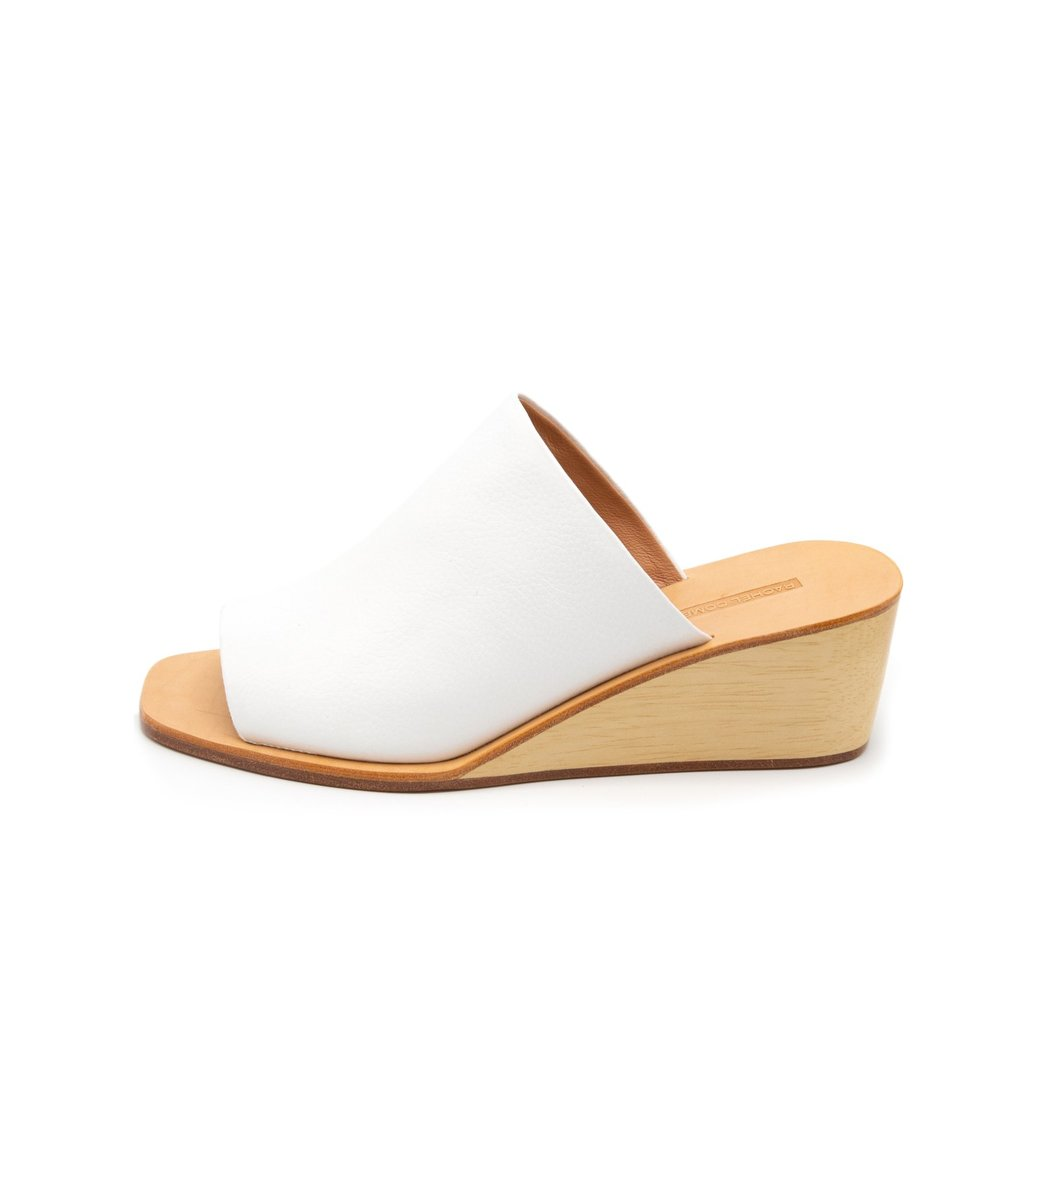 Rachel Comey Lyell Wedge in White